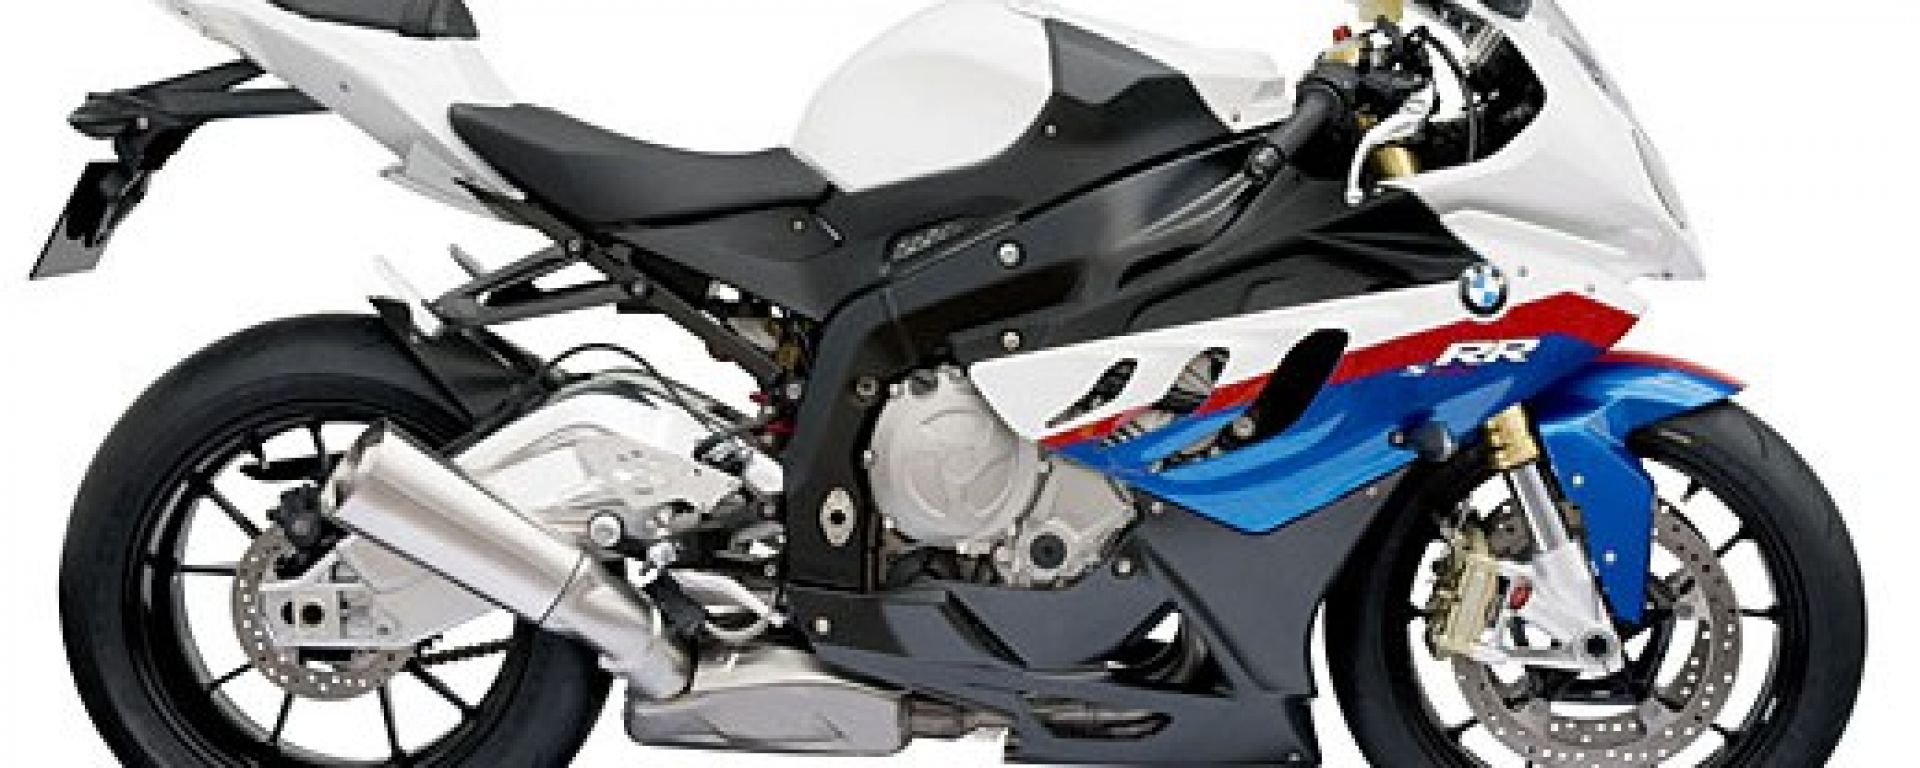 Come nasce la BMW S 1000 RR